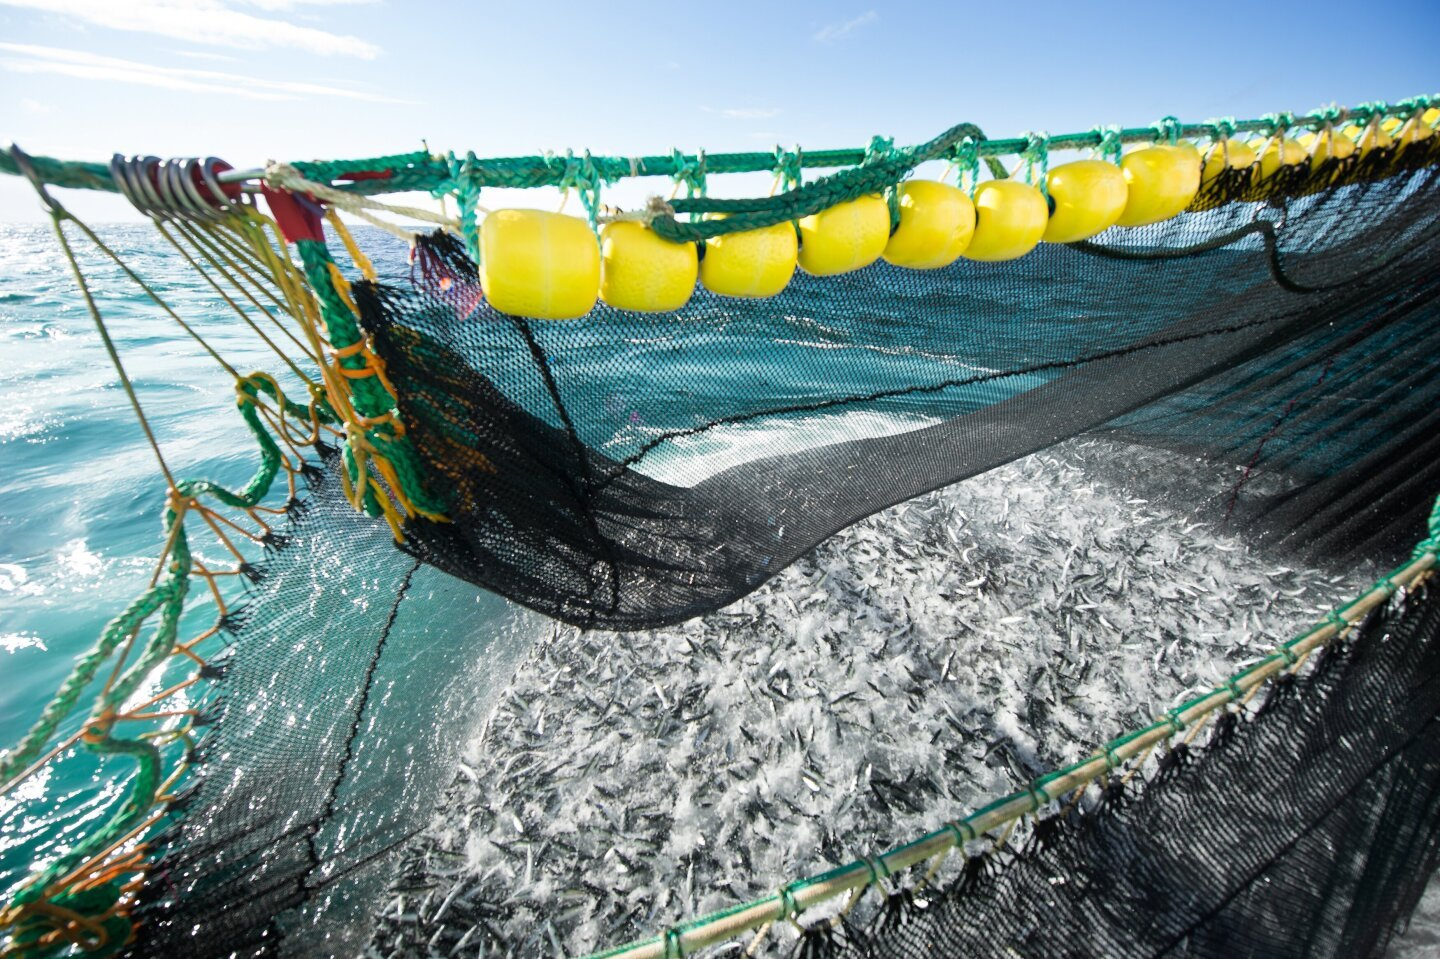 EU, UK and Norway Take Hesitant steps towards ending overfishing but nothing to celebrate claims non-governmental environmental organisations